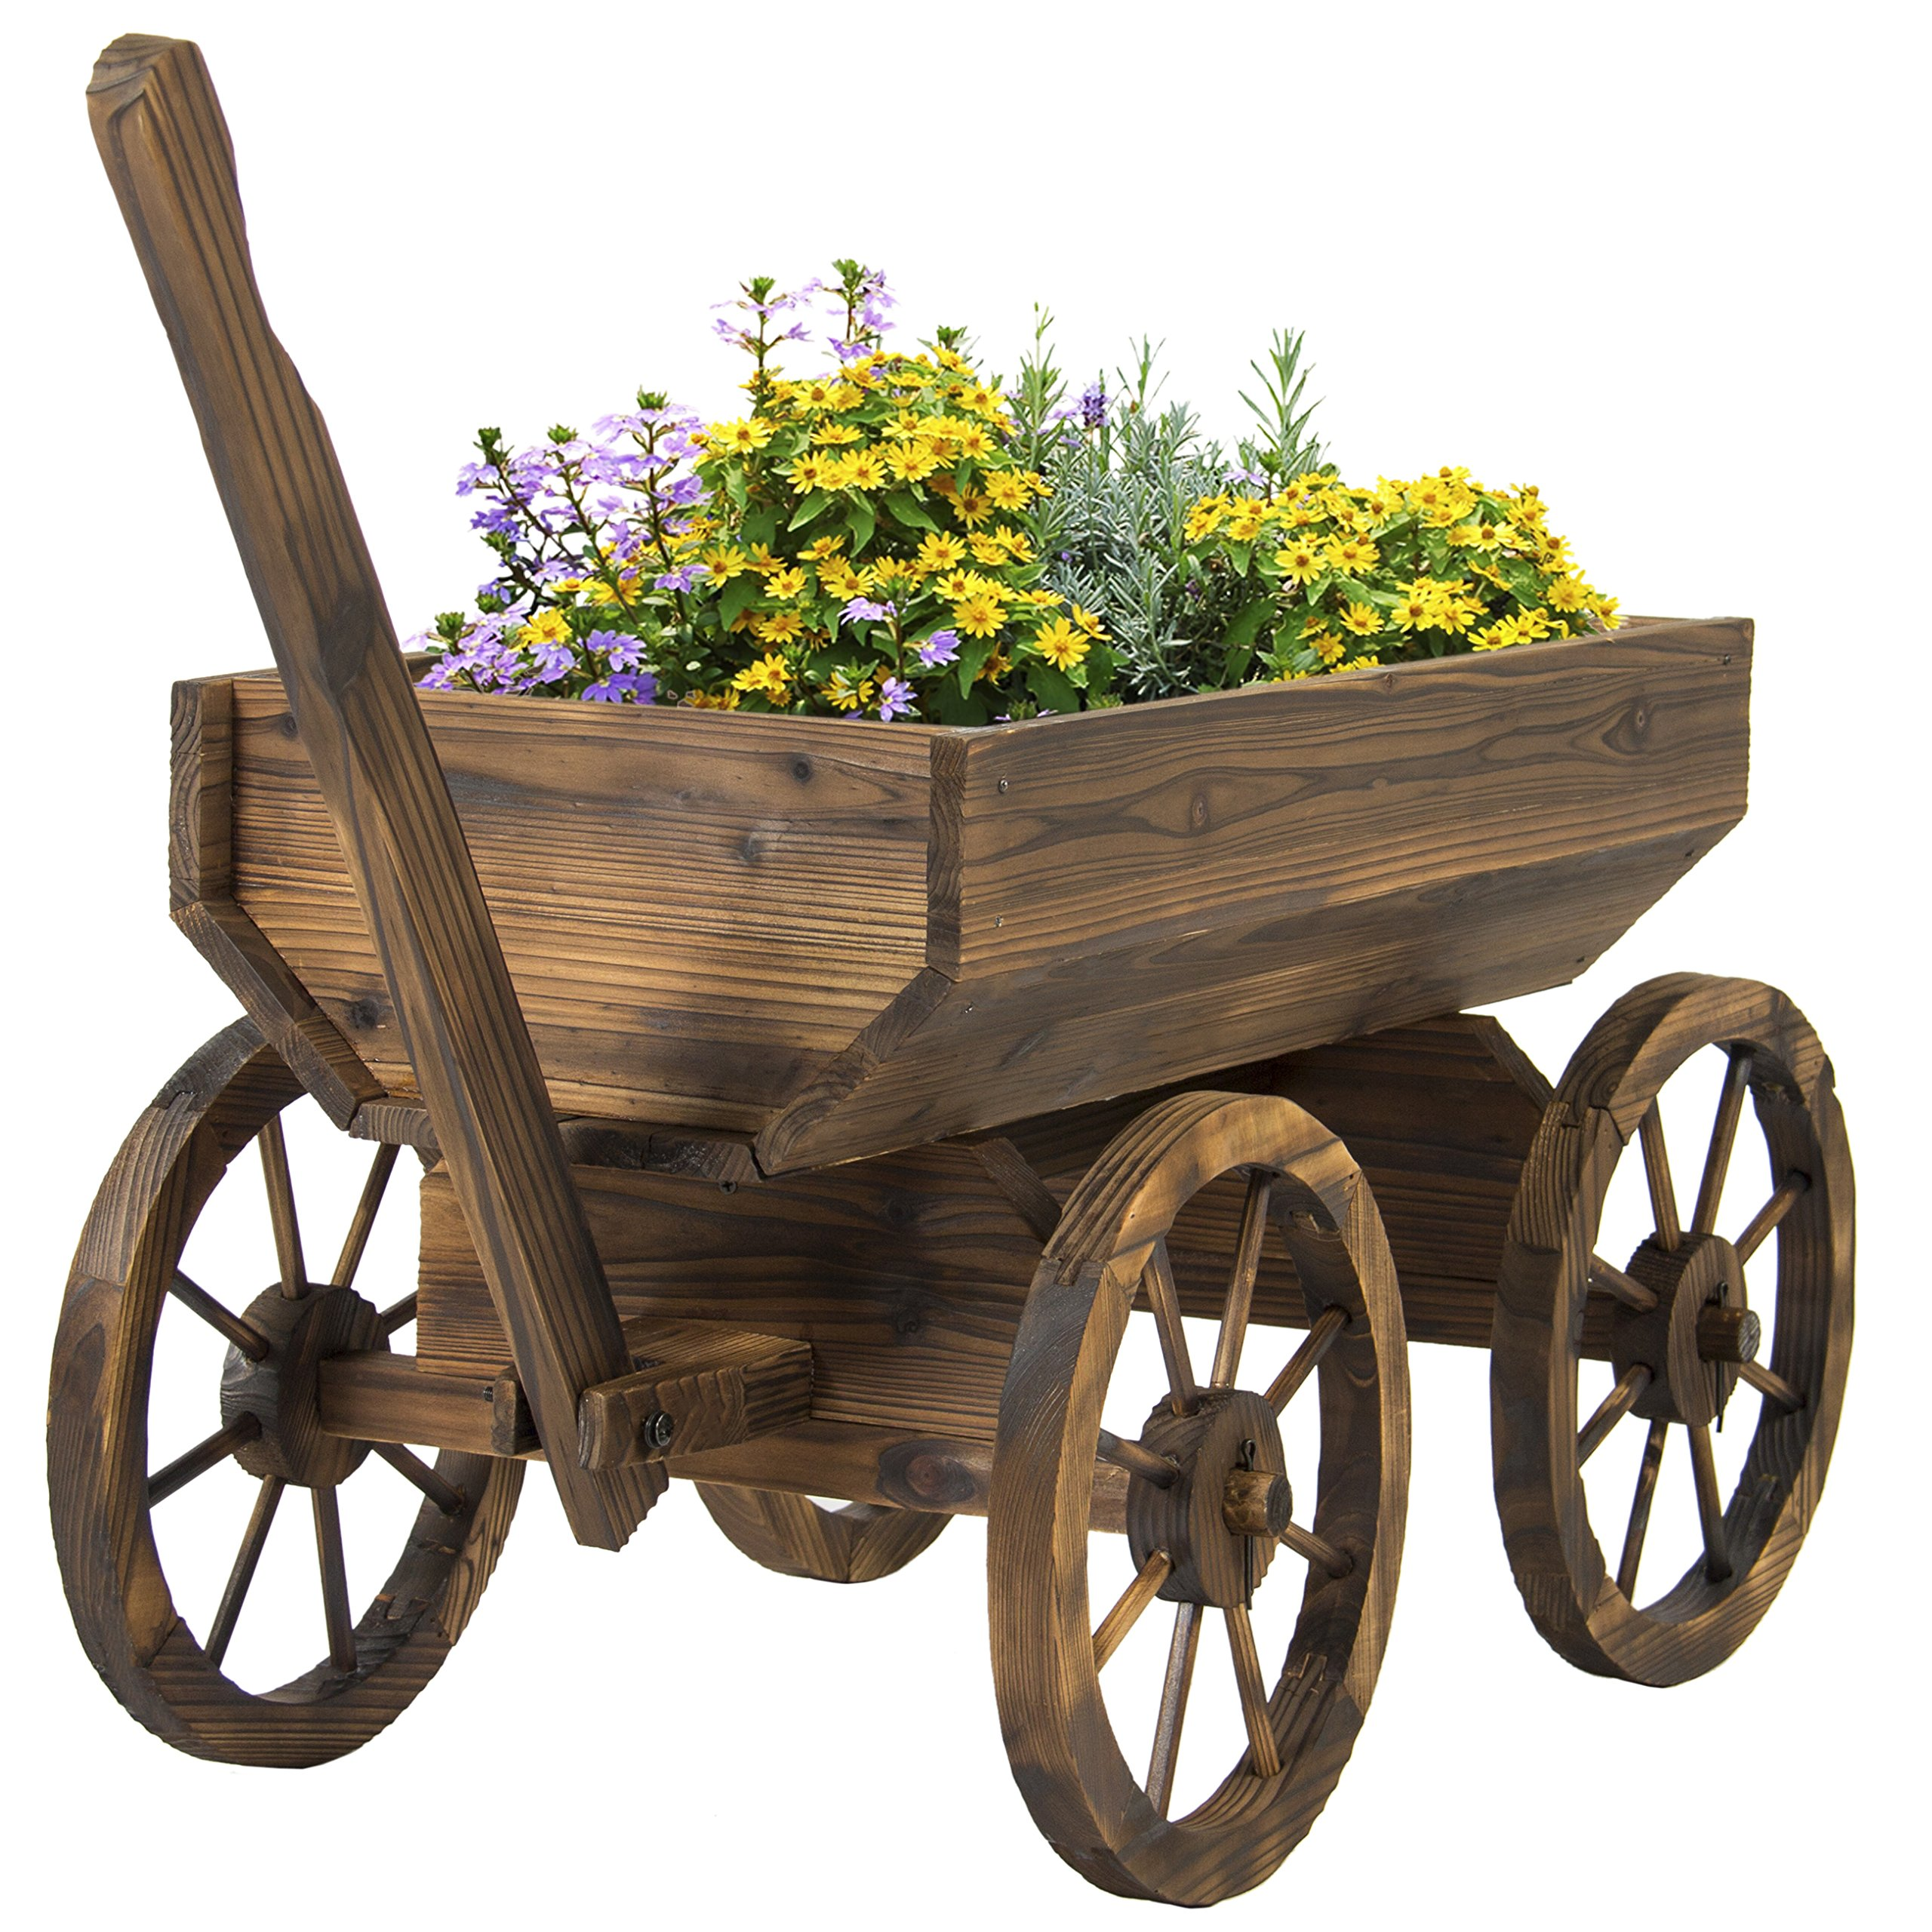 Best Choice Products Patio Garden Wooden Wagon Backyard Grow Flowers Planter w/ Wheels Home Outdoor by Best Choice Products